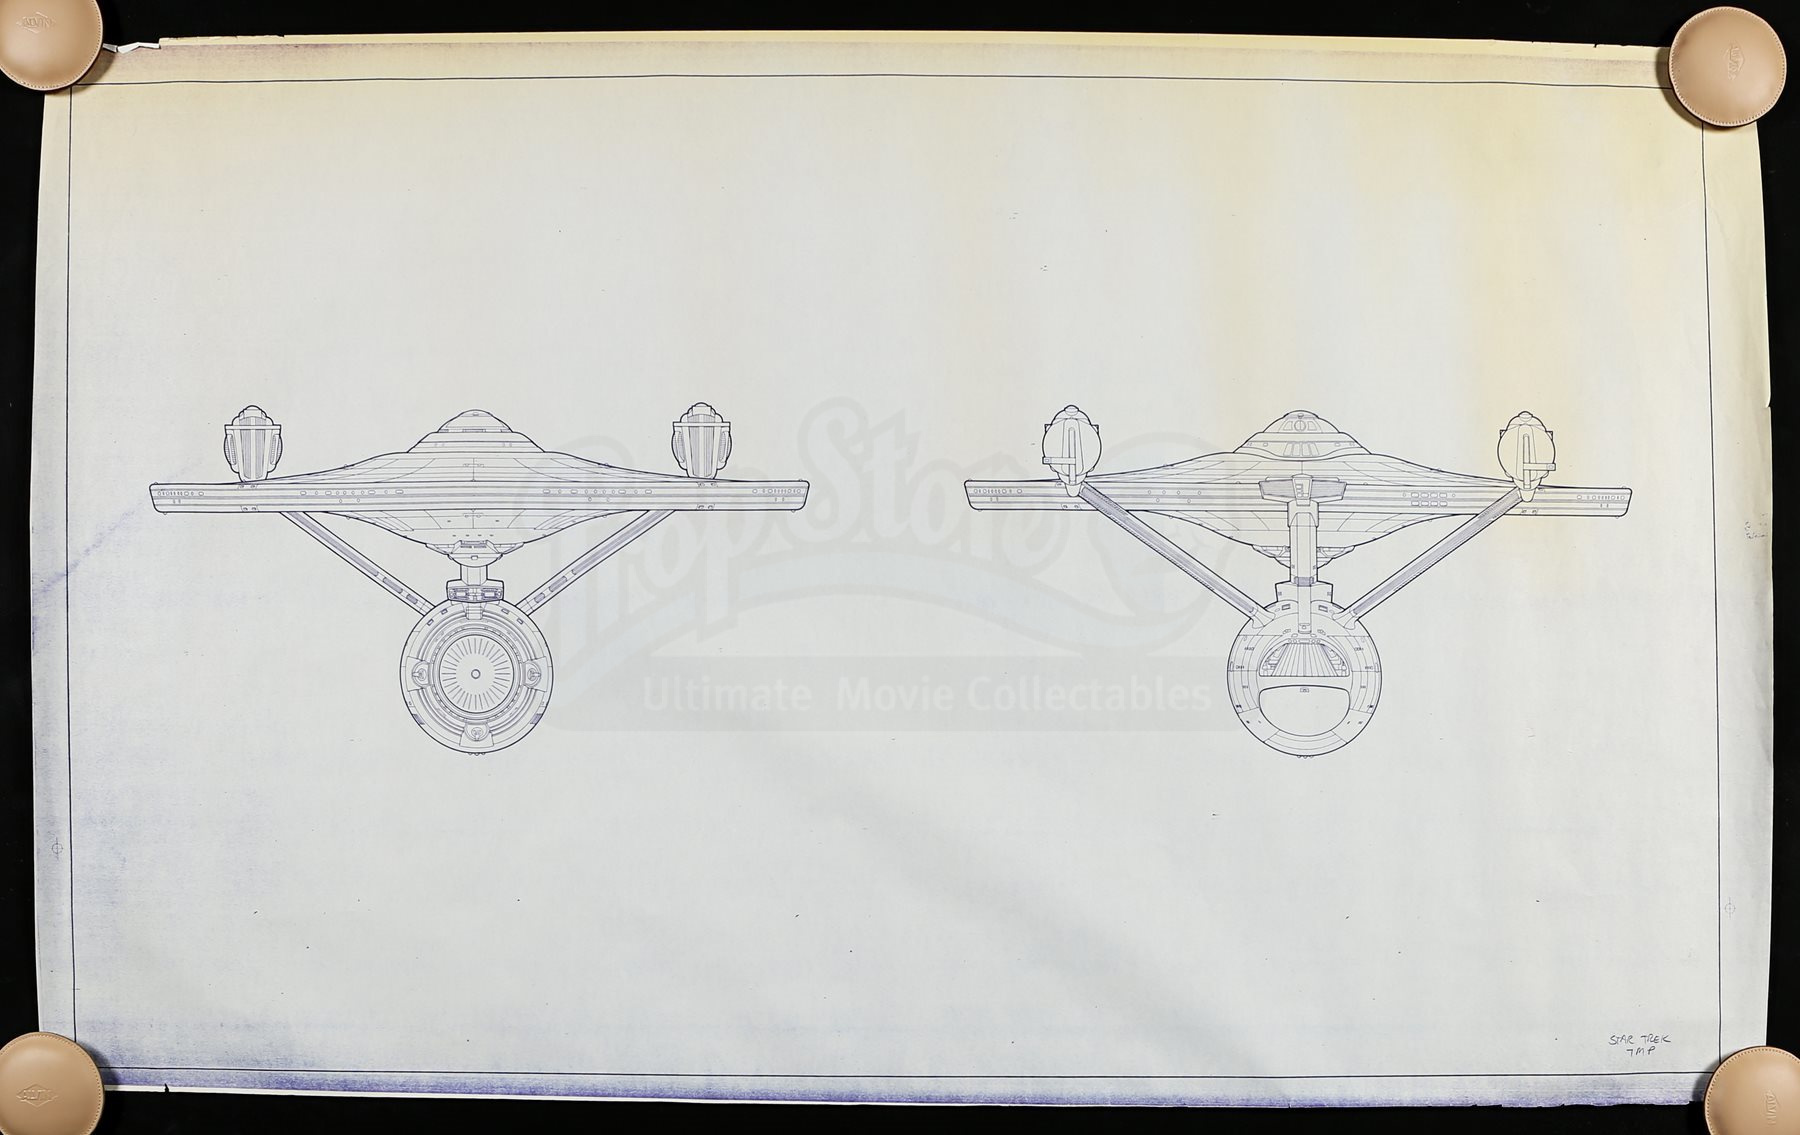 Star trek the motion picture uss enterprise ncc 1701 bow and lot 1 malvernweather Image collections